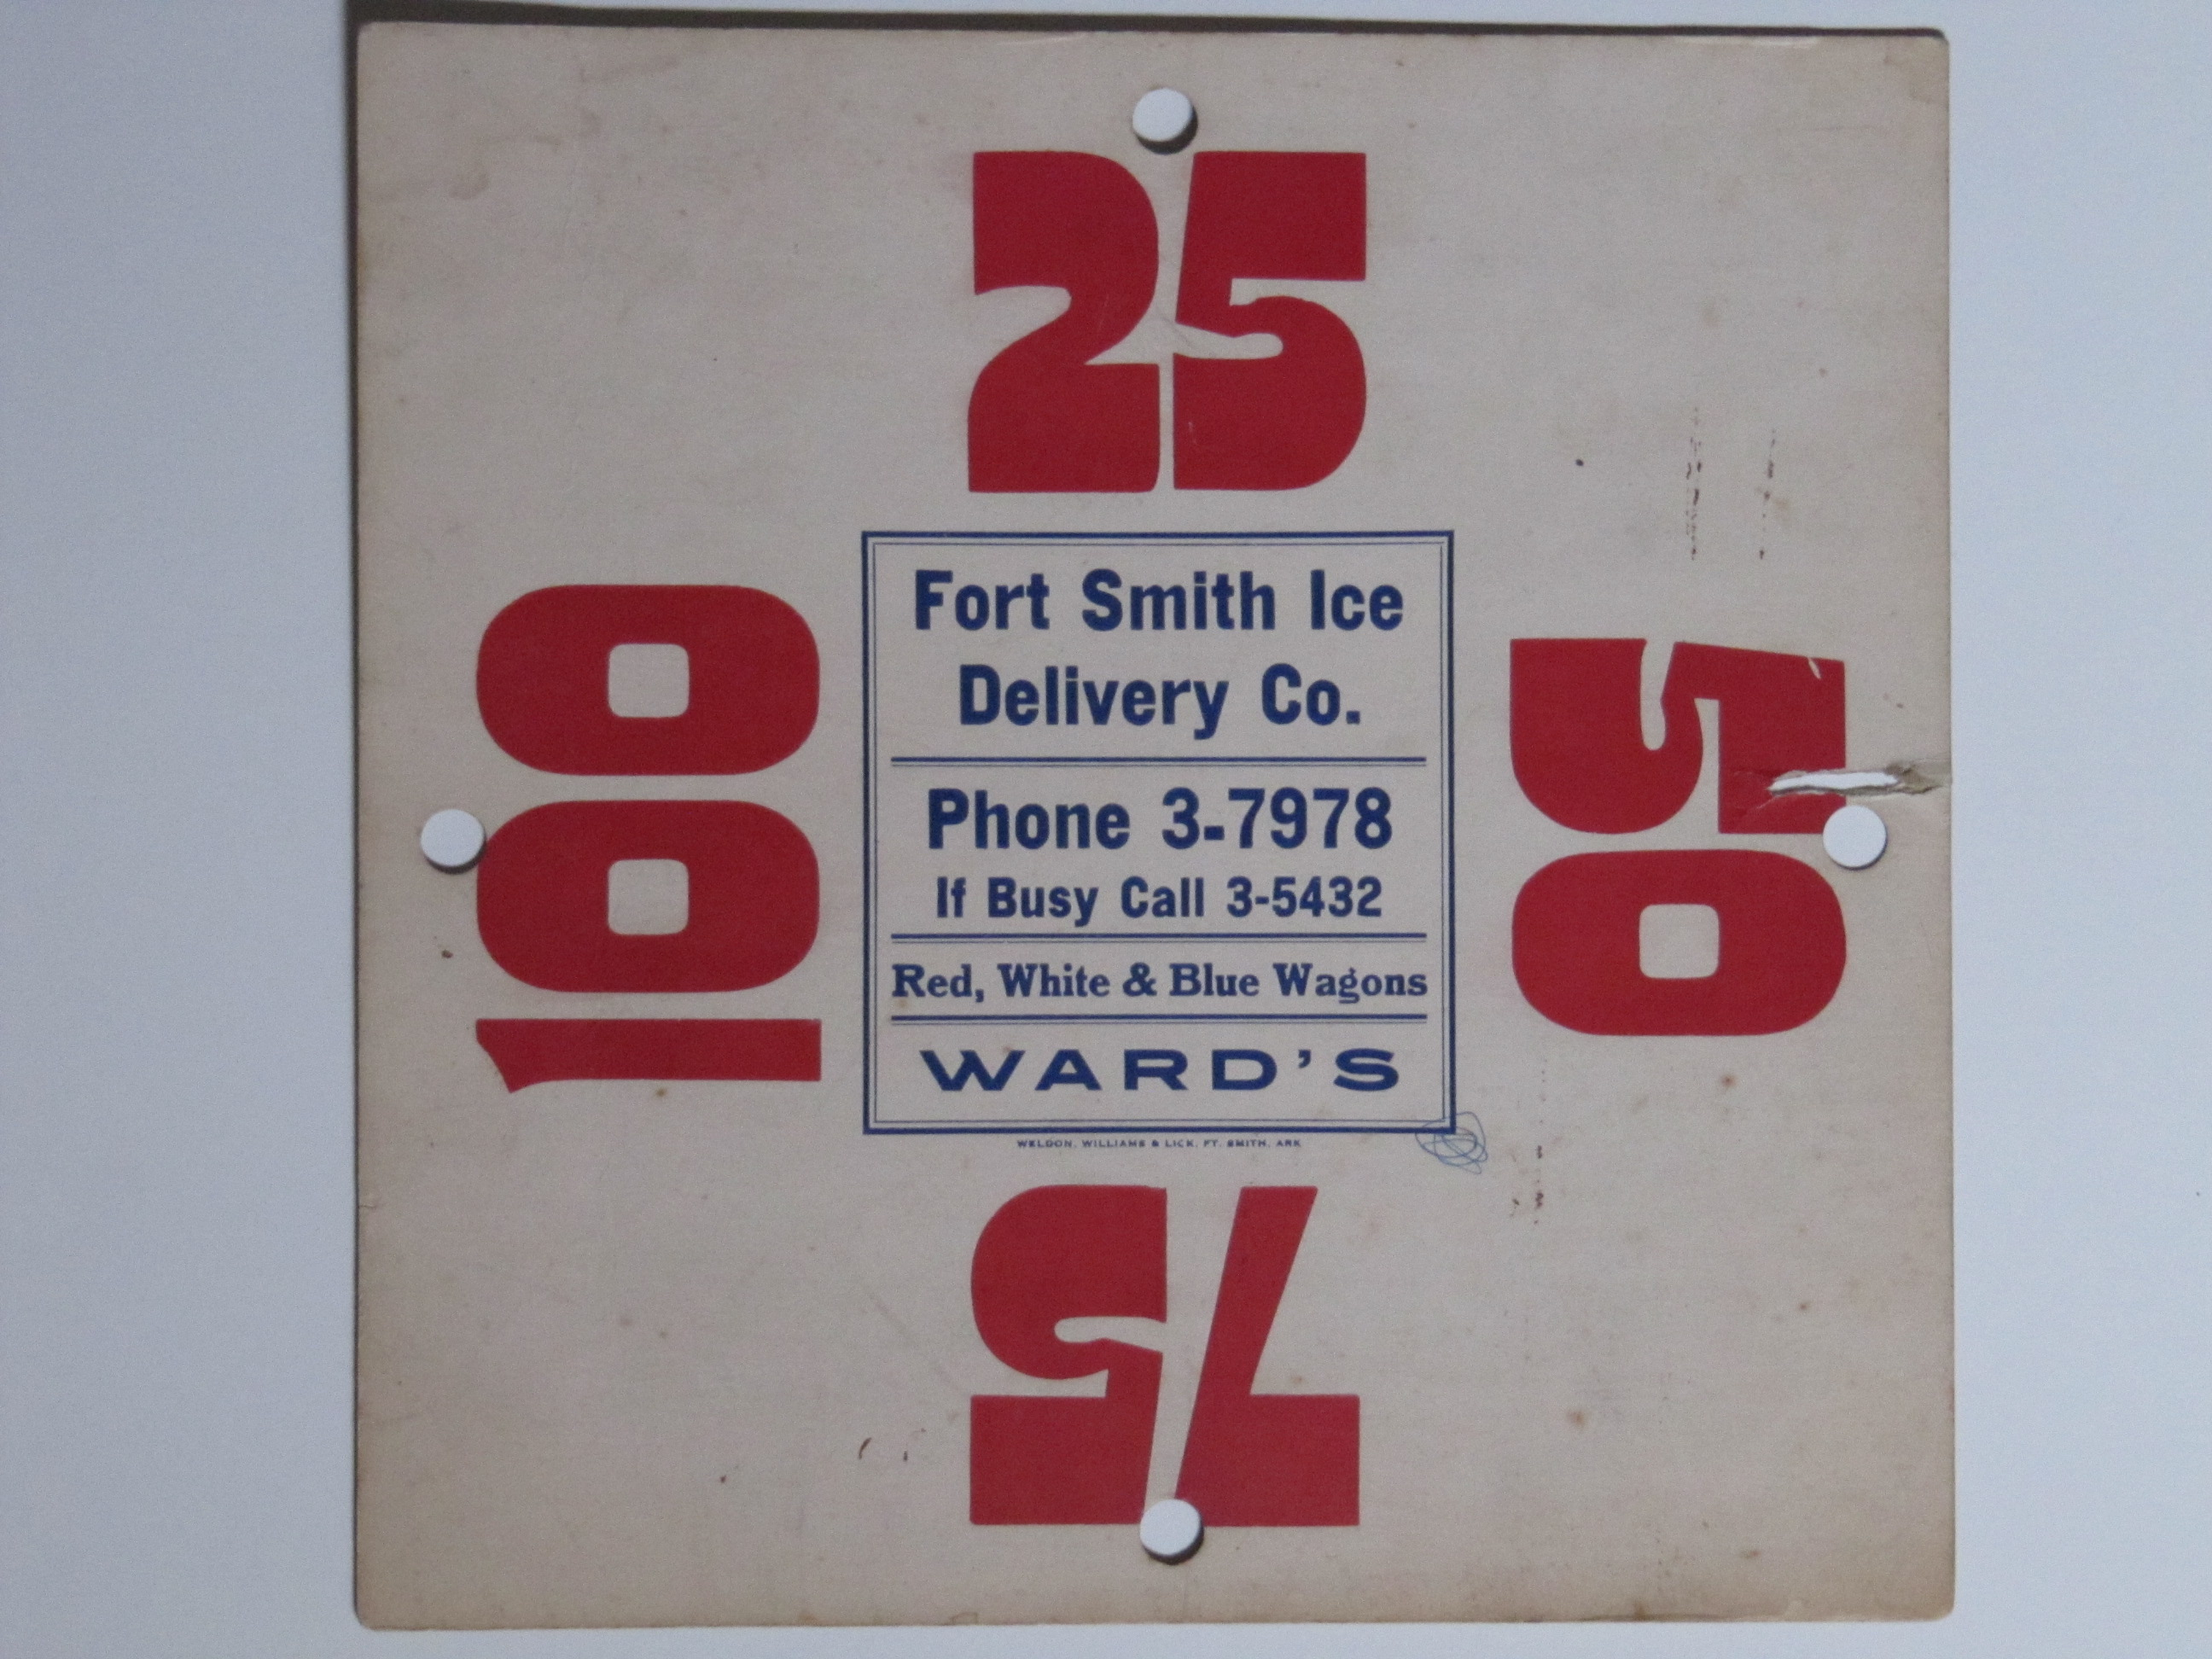 Fort Smith Ice